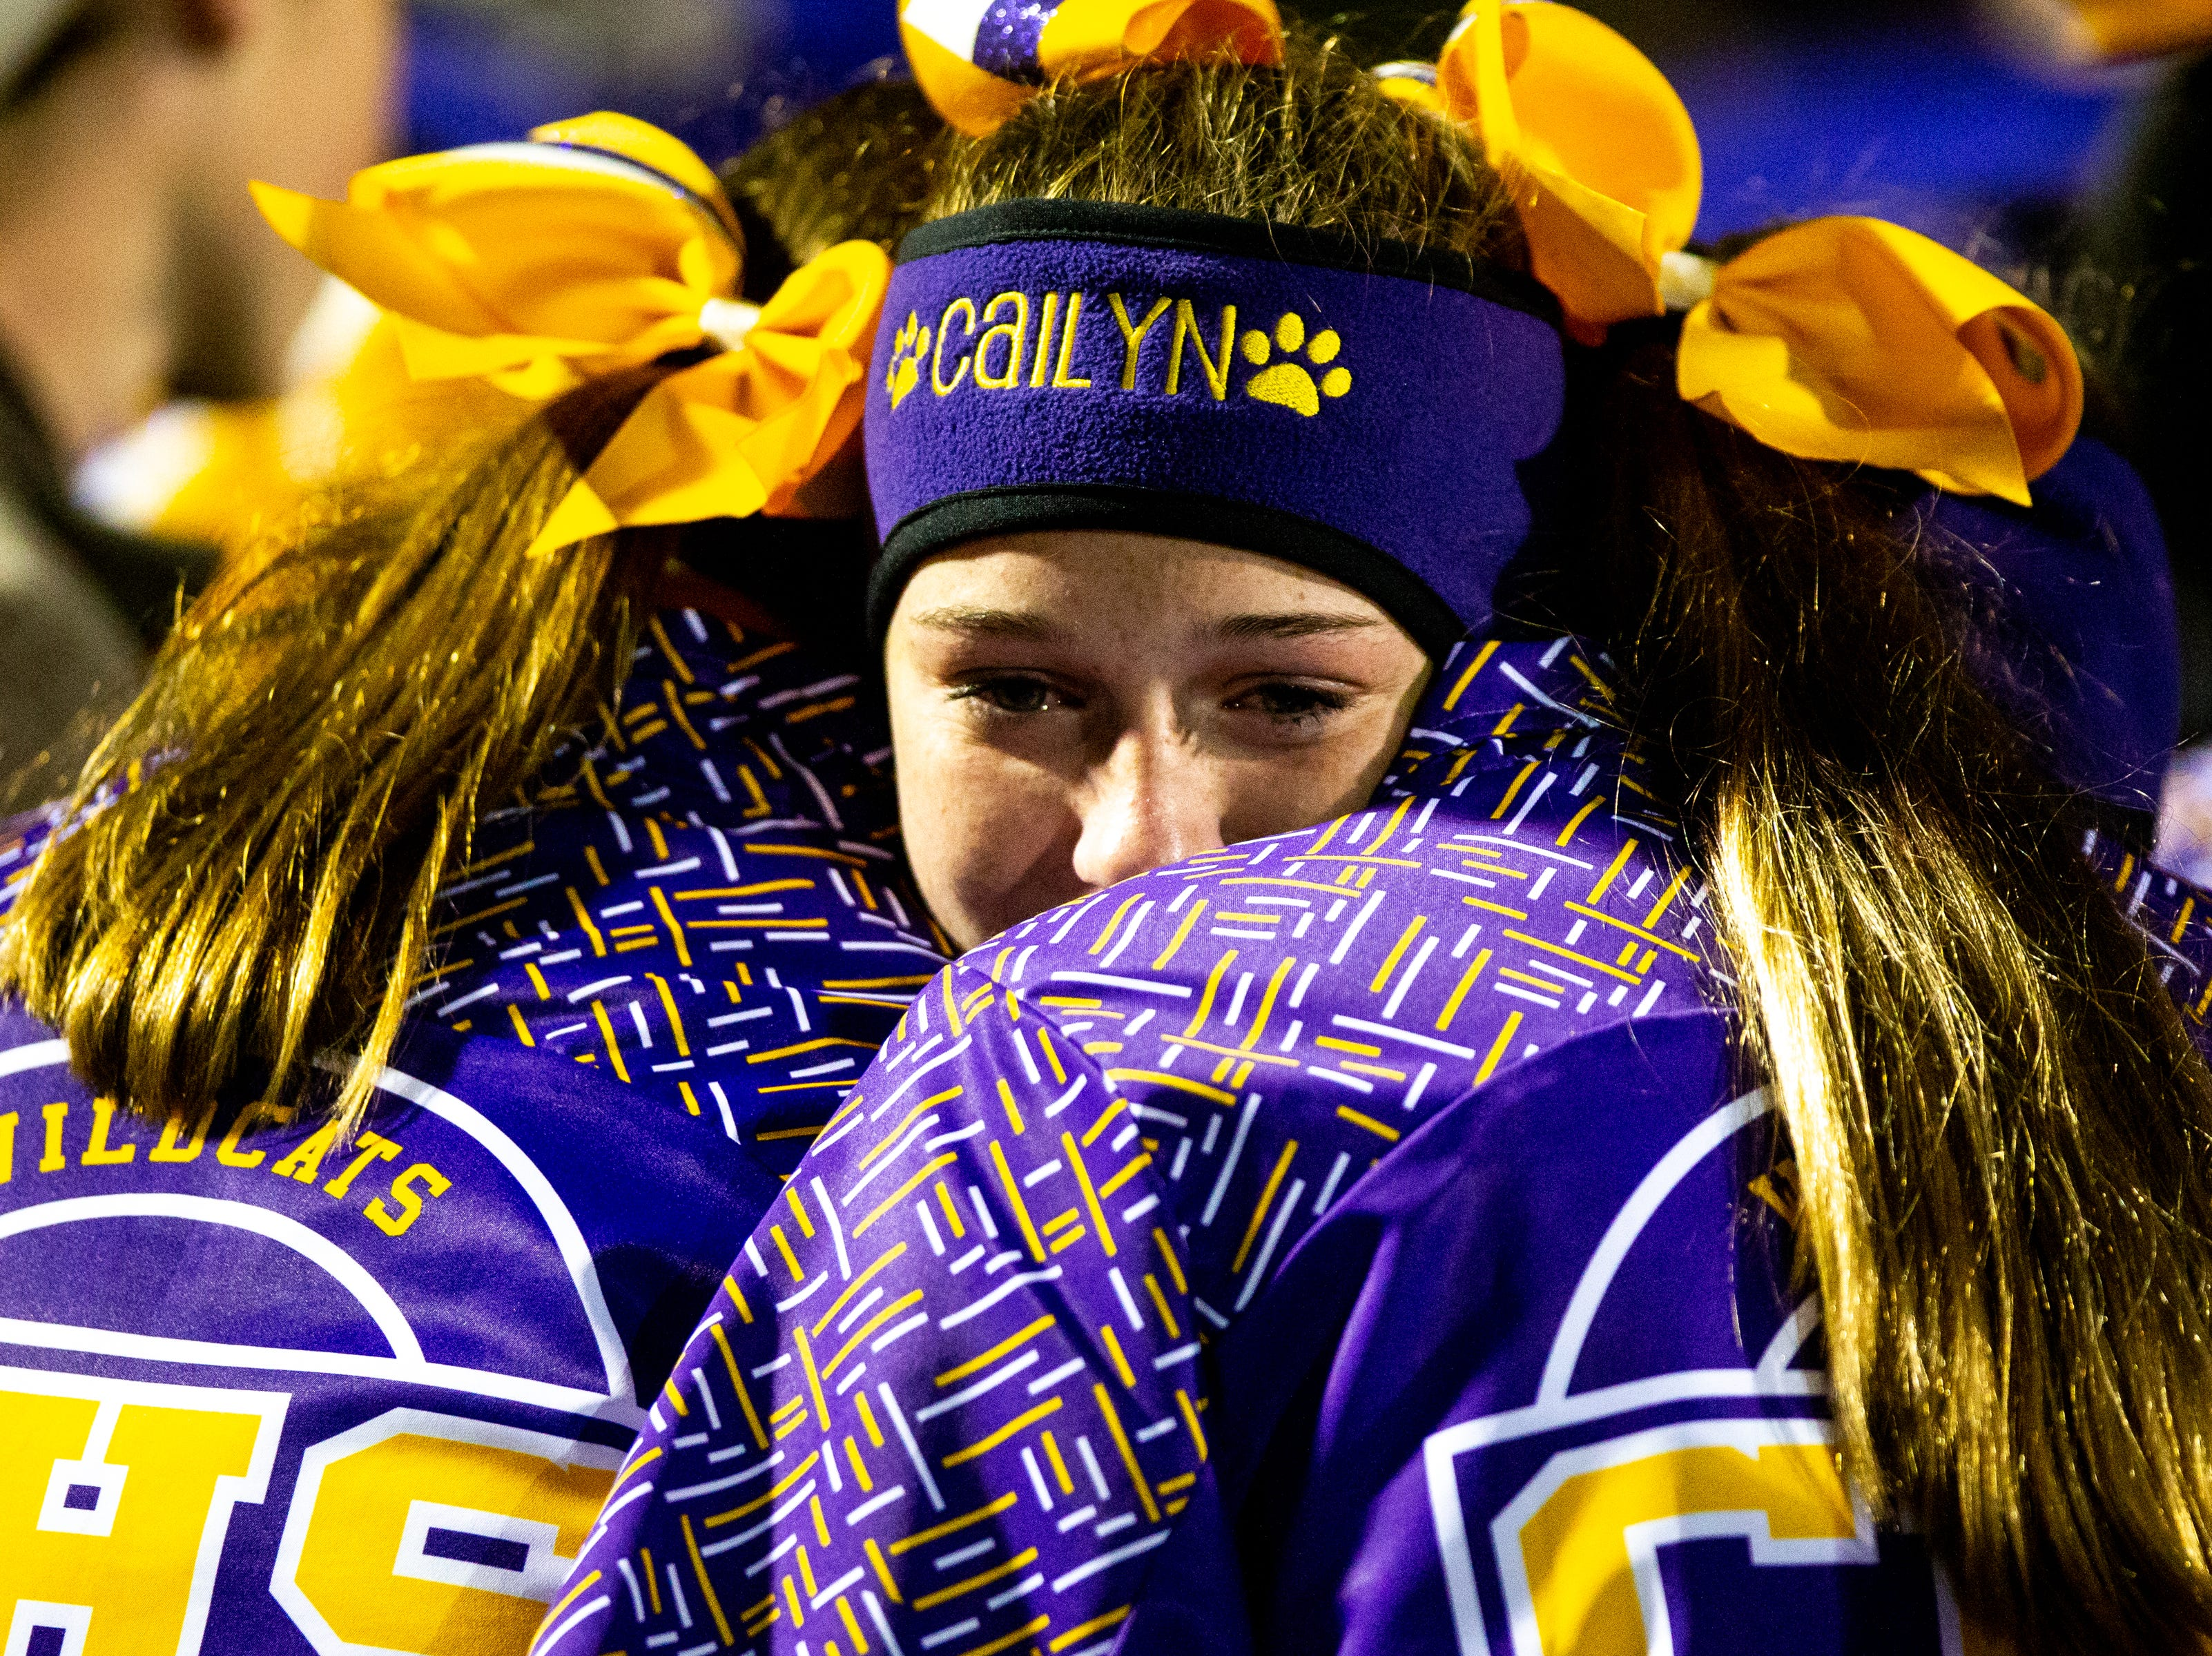 Clarksville High cheerleaders comfort each other after losing in overtime at Clarksville High Friday, Nov. 2, 2018, in Clarksville, Tenn.